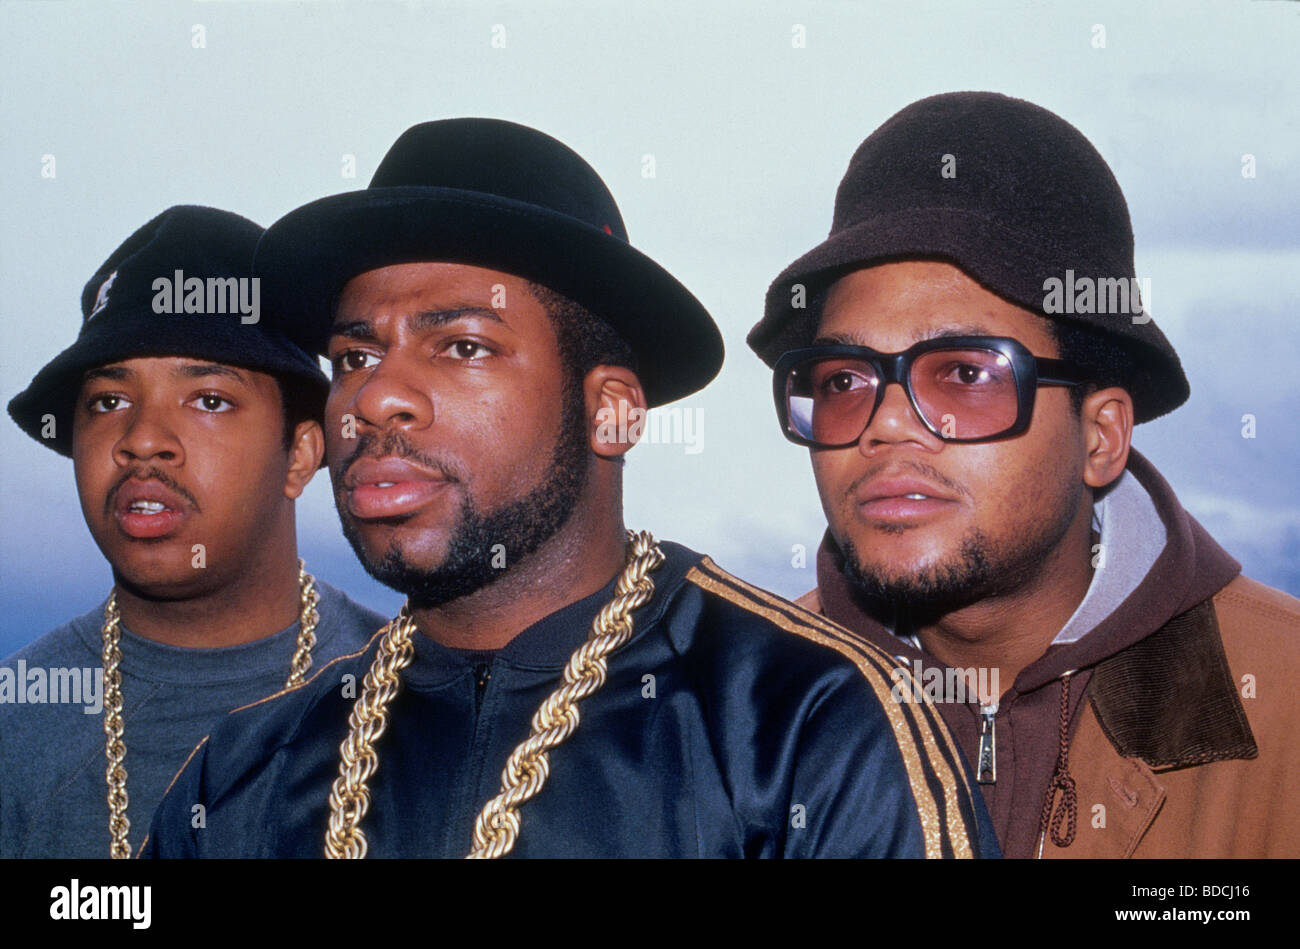 RUN-DMC  US rap group in 1986 - Stock Image